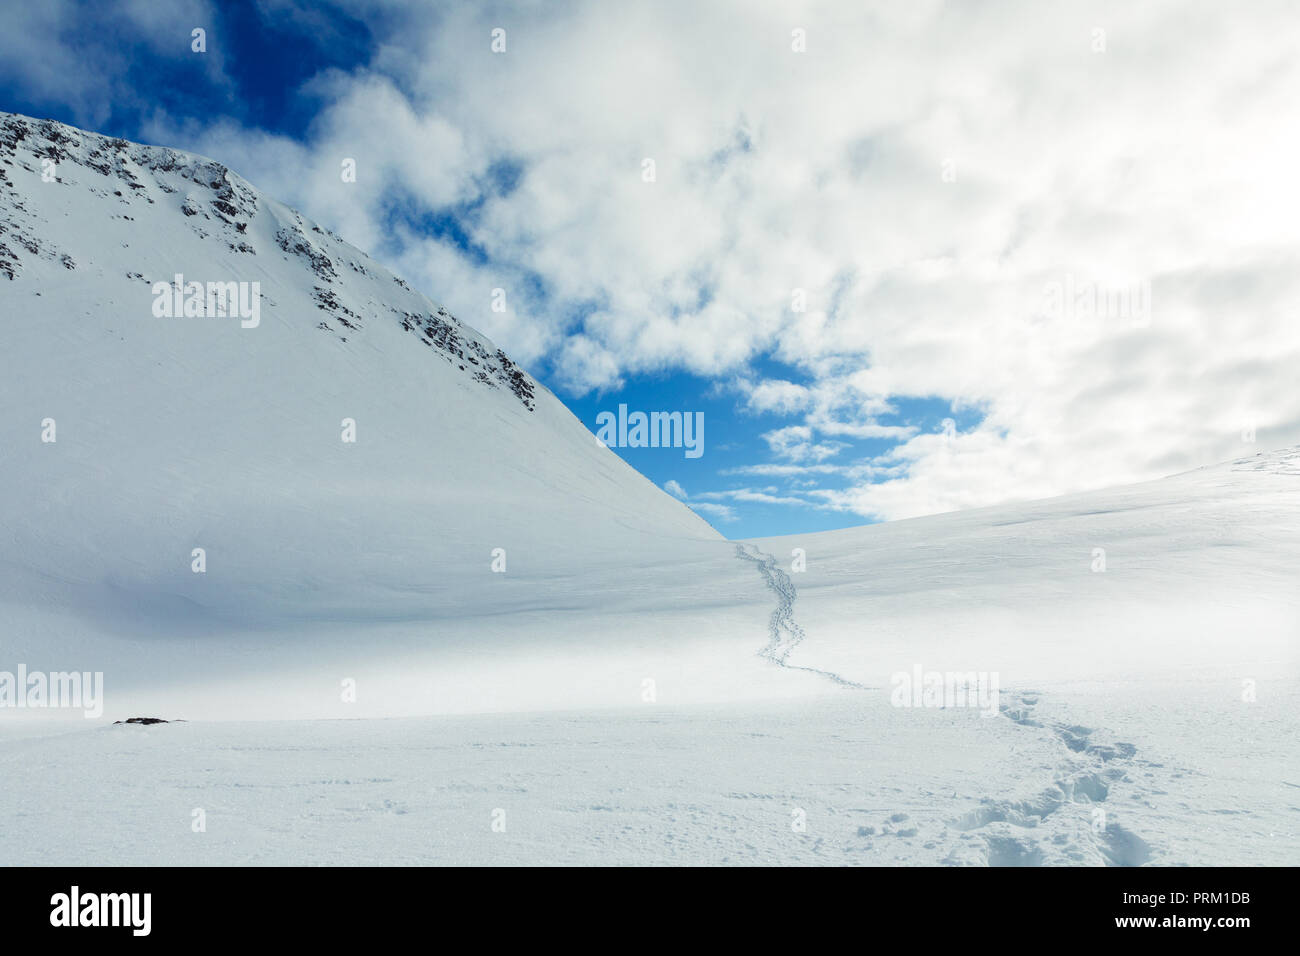 Tracks leading up a snow covered mountain with dramatic blue skies in Norway. - Stock Image